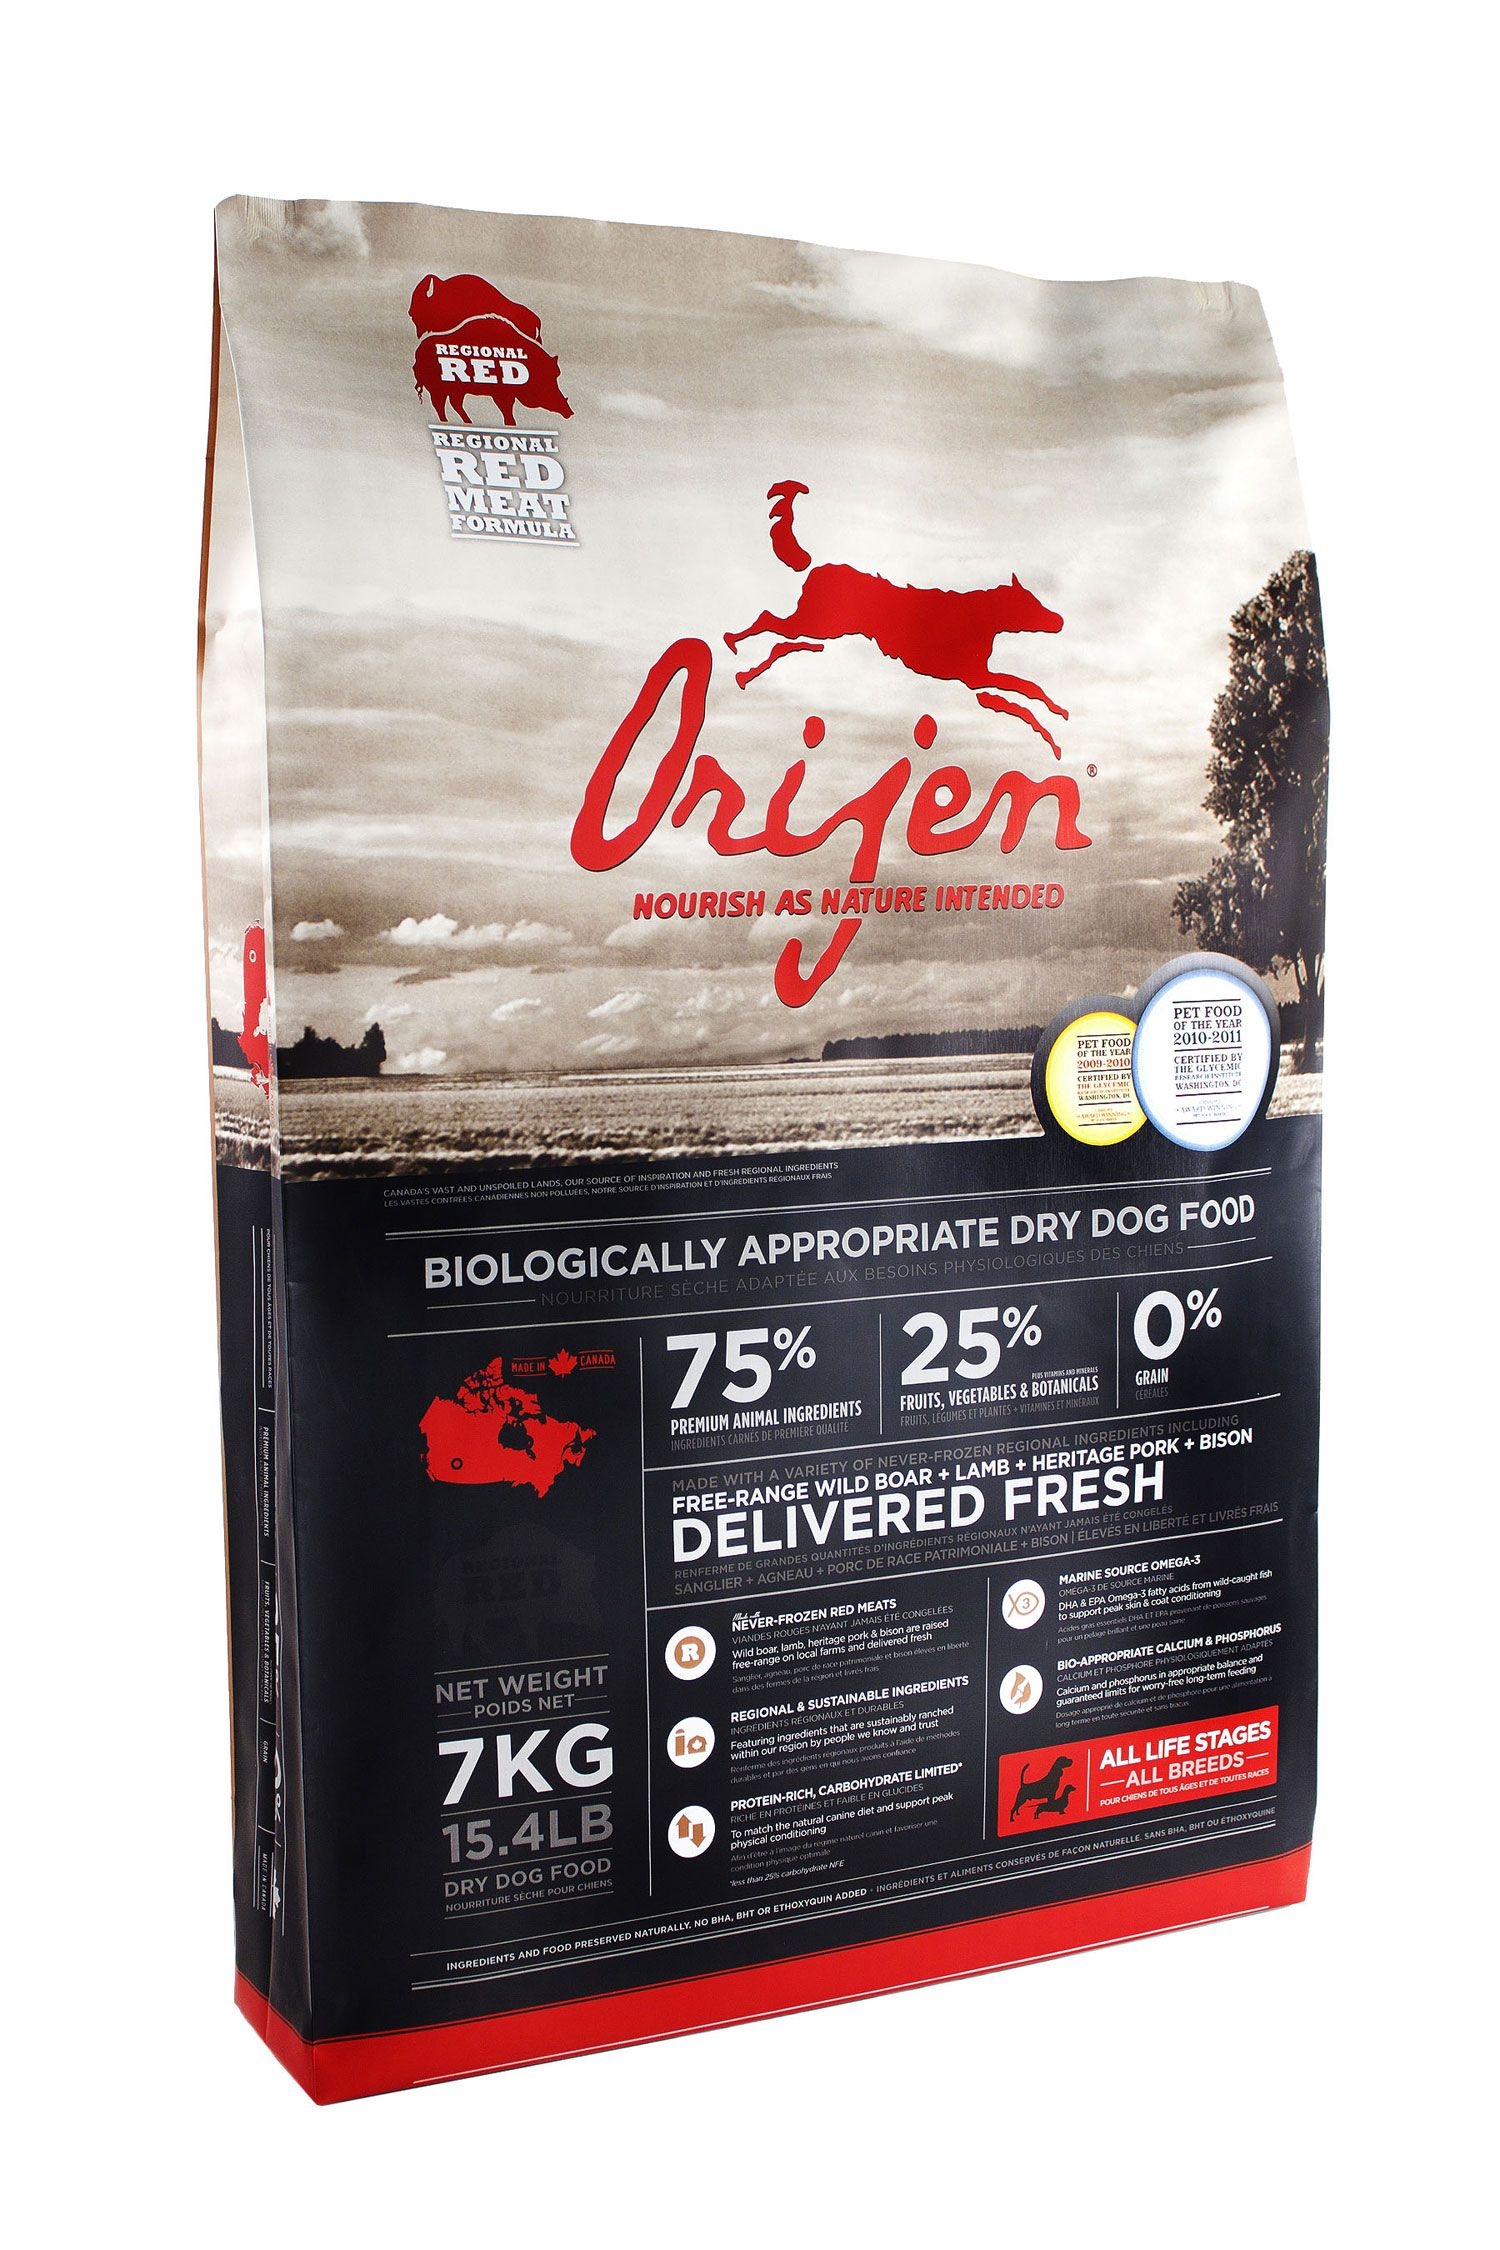 Orijen Food For Cats And Dogs Made In Canada Has Gotten The Best Dog Food Award From Washington D C For 3 Years Dog Food Recipes Best Dog Food Food Animals